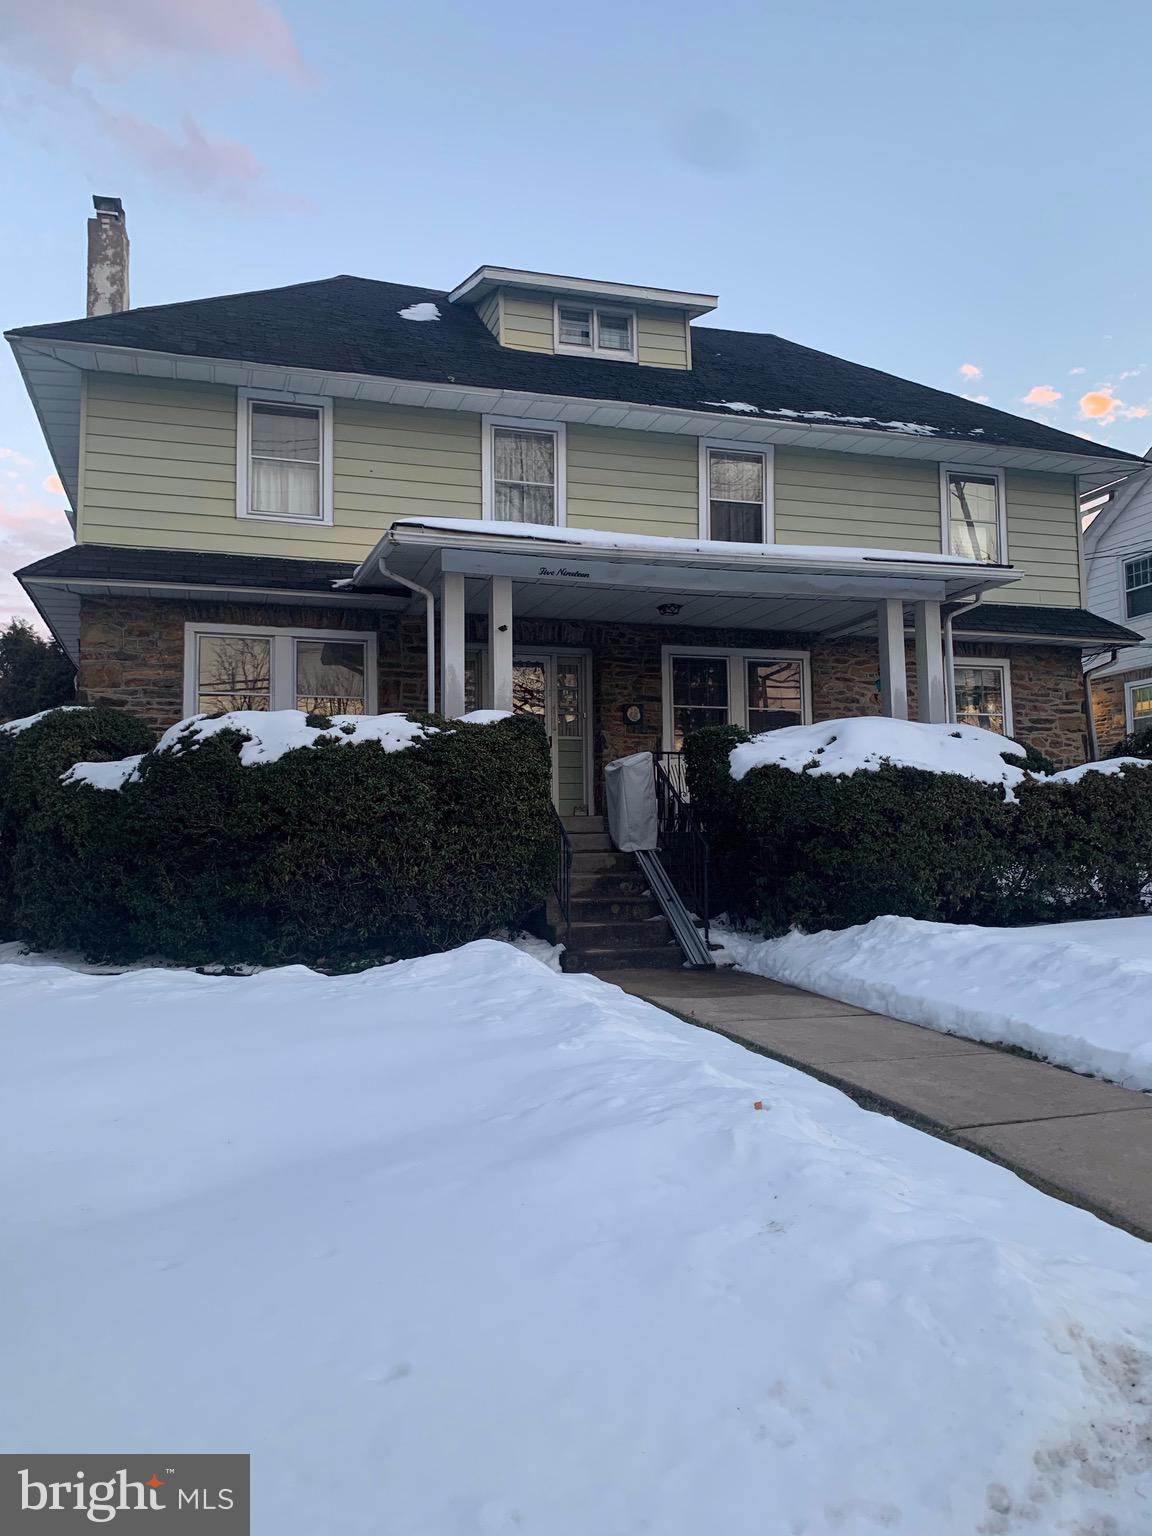 Fabulous opportunity!  This sale includes three properties located at 515 S. Woodbine Ave. Penn Valley, 519 S. Woodbine Ave. Penn Valley and a parcel (possible building lot) on Willow Way, Penn Valley. 515 S. Woodbine Ave. is a 2 story single home -living room with. fireplace and entrance to an enclosed porch, dining room, kitchen and storage room. 2nd floor has 3 bedrooms and a hall bathroom.  Stairs up to an unfinished 3rd floor.  Covered large front porch is a nice place to relax. 2 car detached garage in rear of property .  519 S. Woodbine Ave. is a spacious 3 story single colonial with a covered entry that opens into the foyer-to the left is the large living room with a warm gas fireplace, to the right is a nice size sunny dining room.  The kitchen is updated with stainless steel appliances including a gas stove and a SubZero refrigerator. There is a powder room just off the kitchen.  2nd Floor has the Primary bedroom, 3 additional bedrooms and a ceramic tile hall bathroom.  3rd Floor has two spacious bedrooms and a full bathroom. There is a recreation room in the partially finished basement. A one car detached garage is in the rear yard. The parcel on Willow Way currently has a built-in pool and pool house that is not  functional and no longer in use. Please see listing agent for the individual lot sizes and taxes on each of the 3 properties.